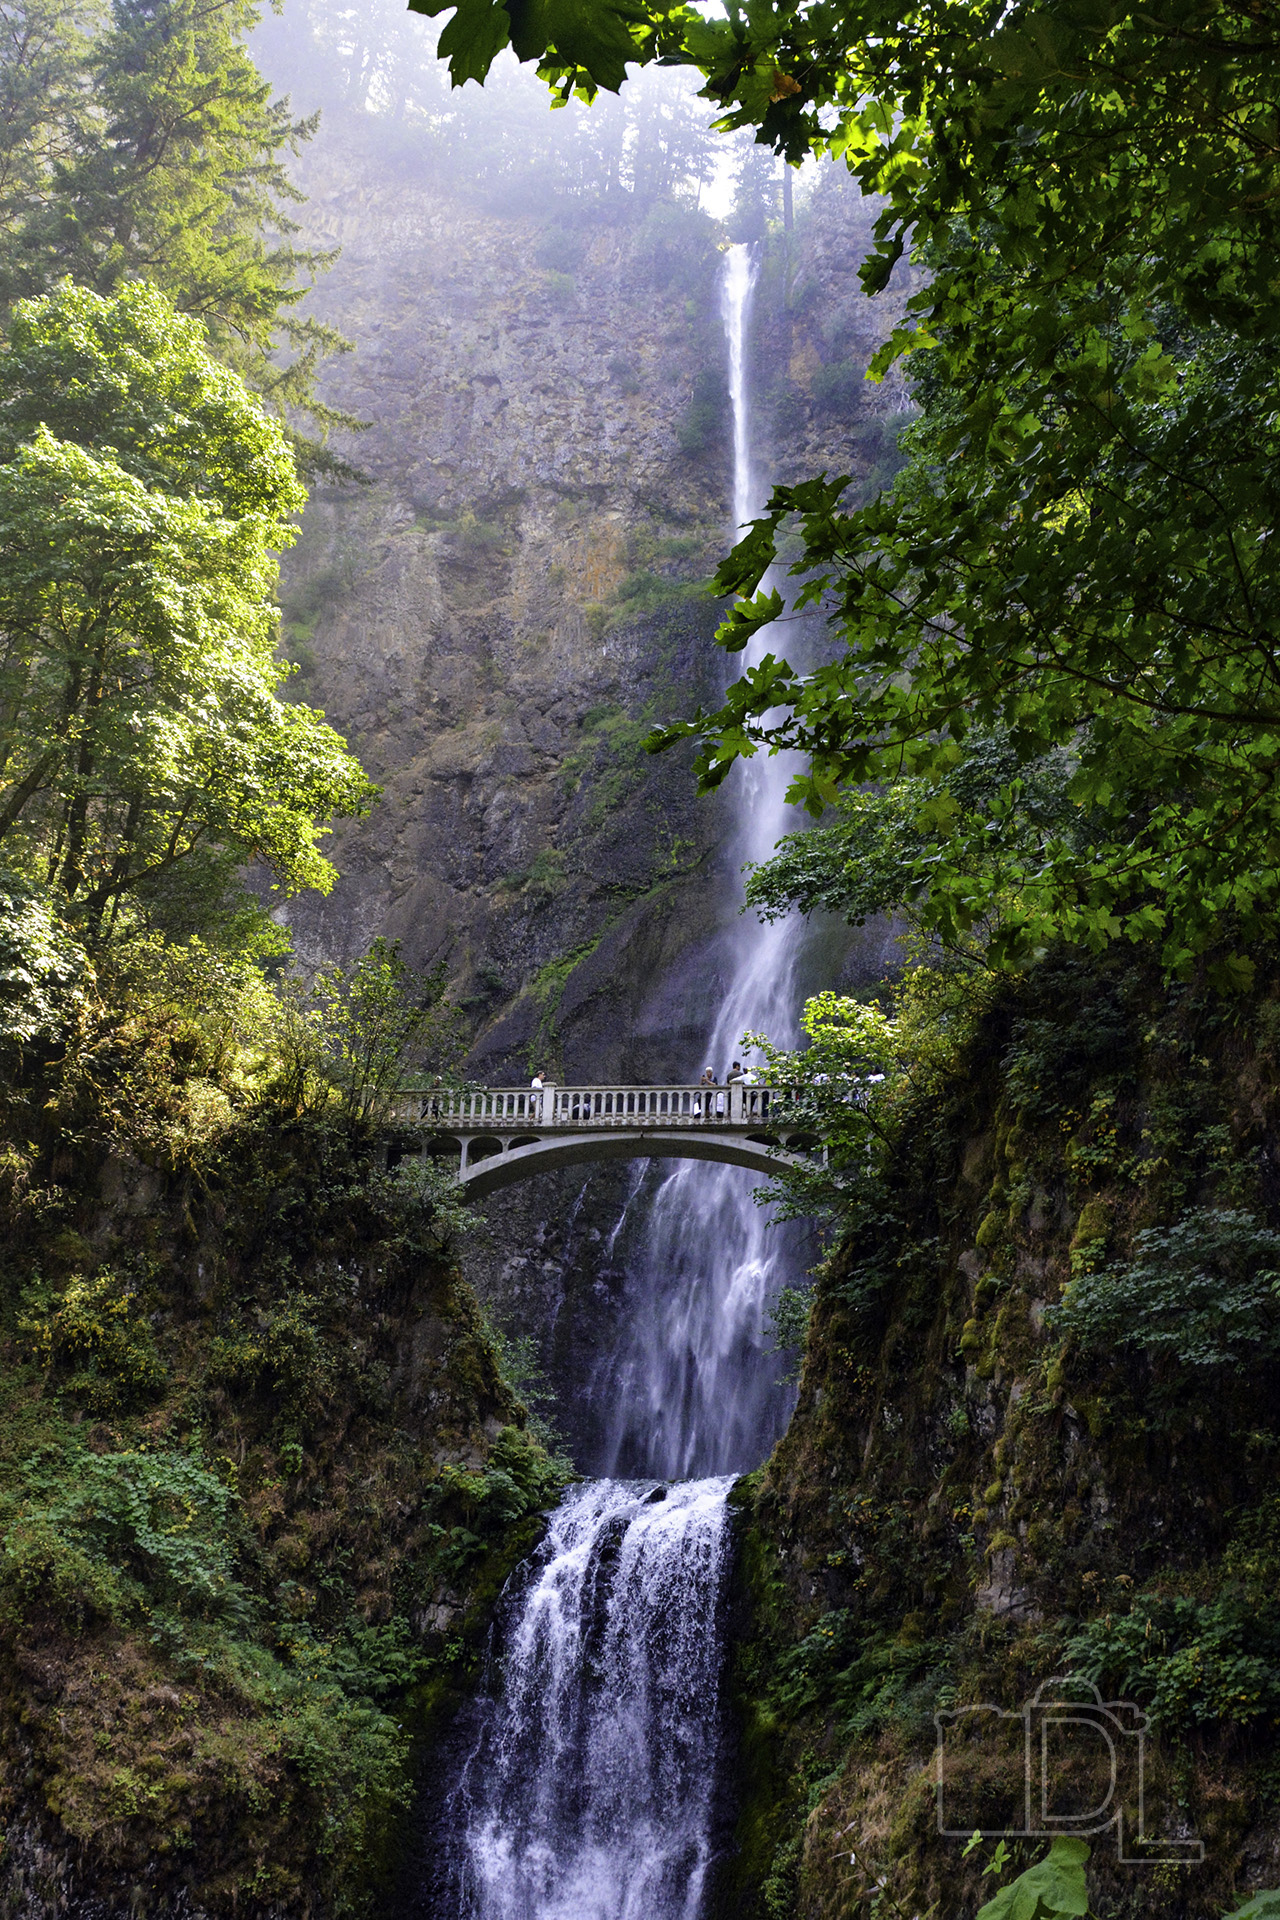 The Multnomah Falls waterfall in Oregon's Columbia River Gorge pours down 611 feet past a walking bridge of tourists.